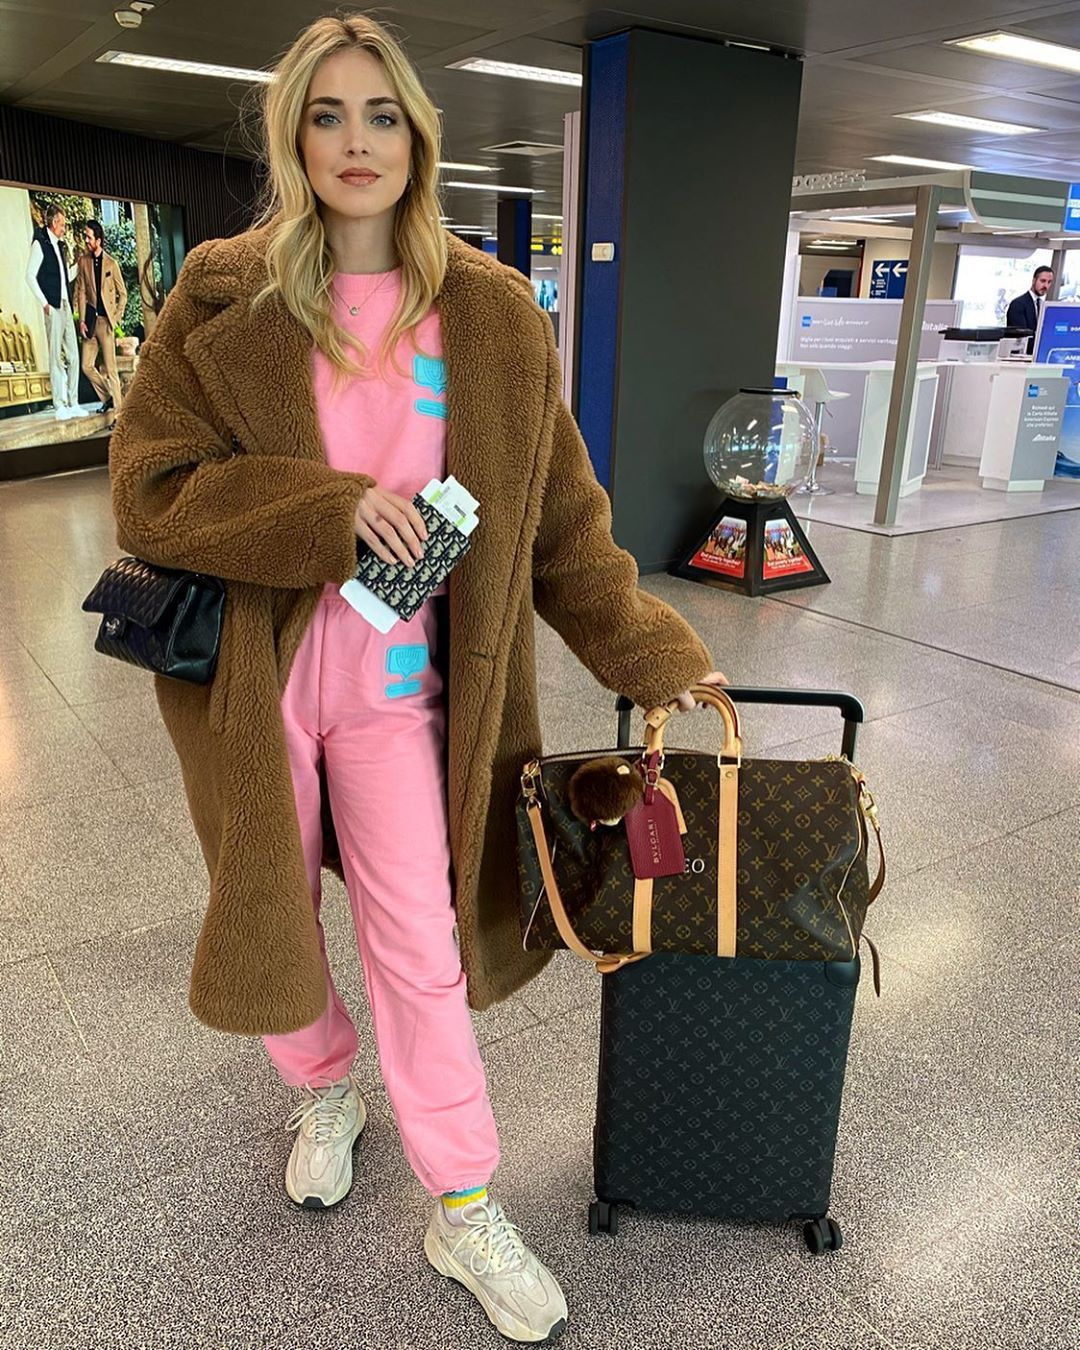 Chiara Ferragni on airport